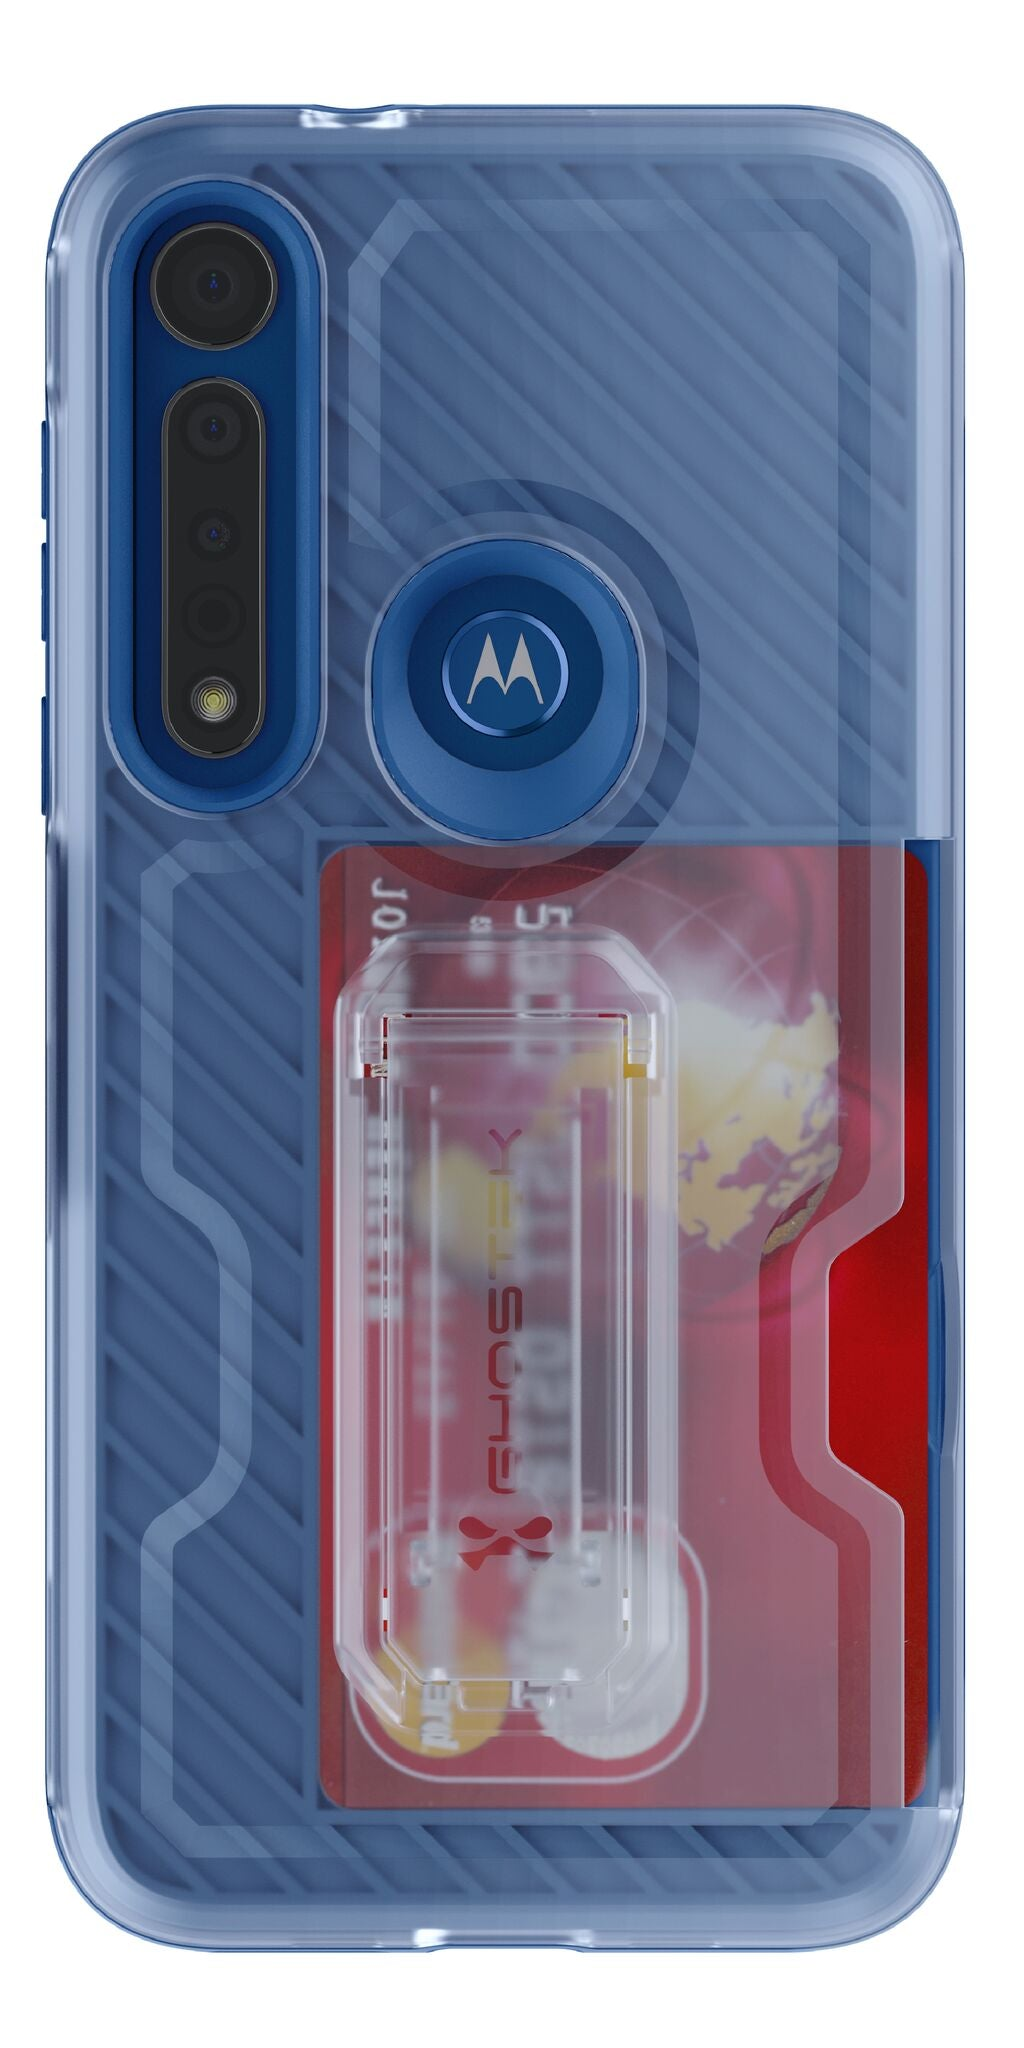 Moto G8 Plus Case | Belt Clip Holster & Built-In Kickstand IRON ARMOR 3 Case | UVIYO CASES , Moto G8 Plus Cases , GHOSTEK - UVIYO